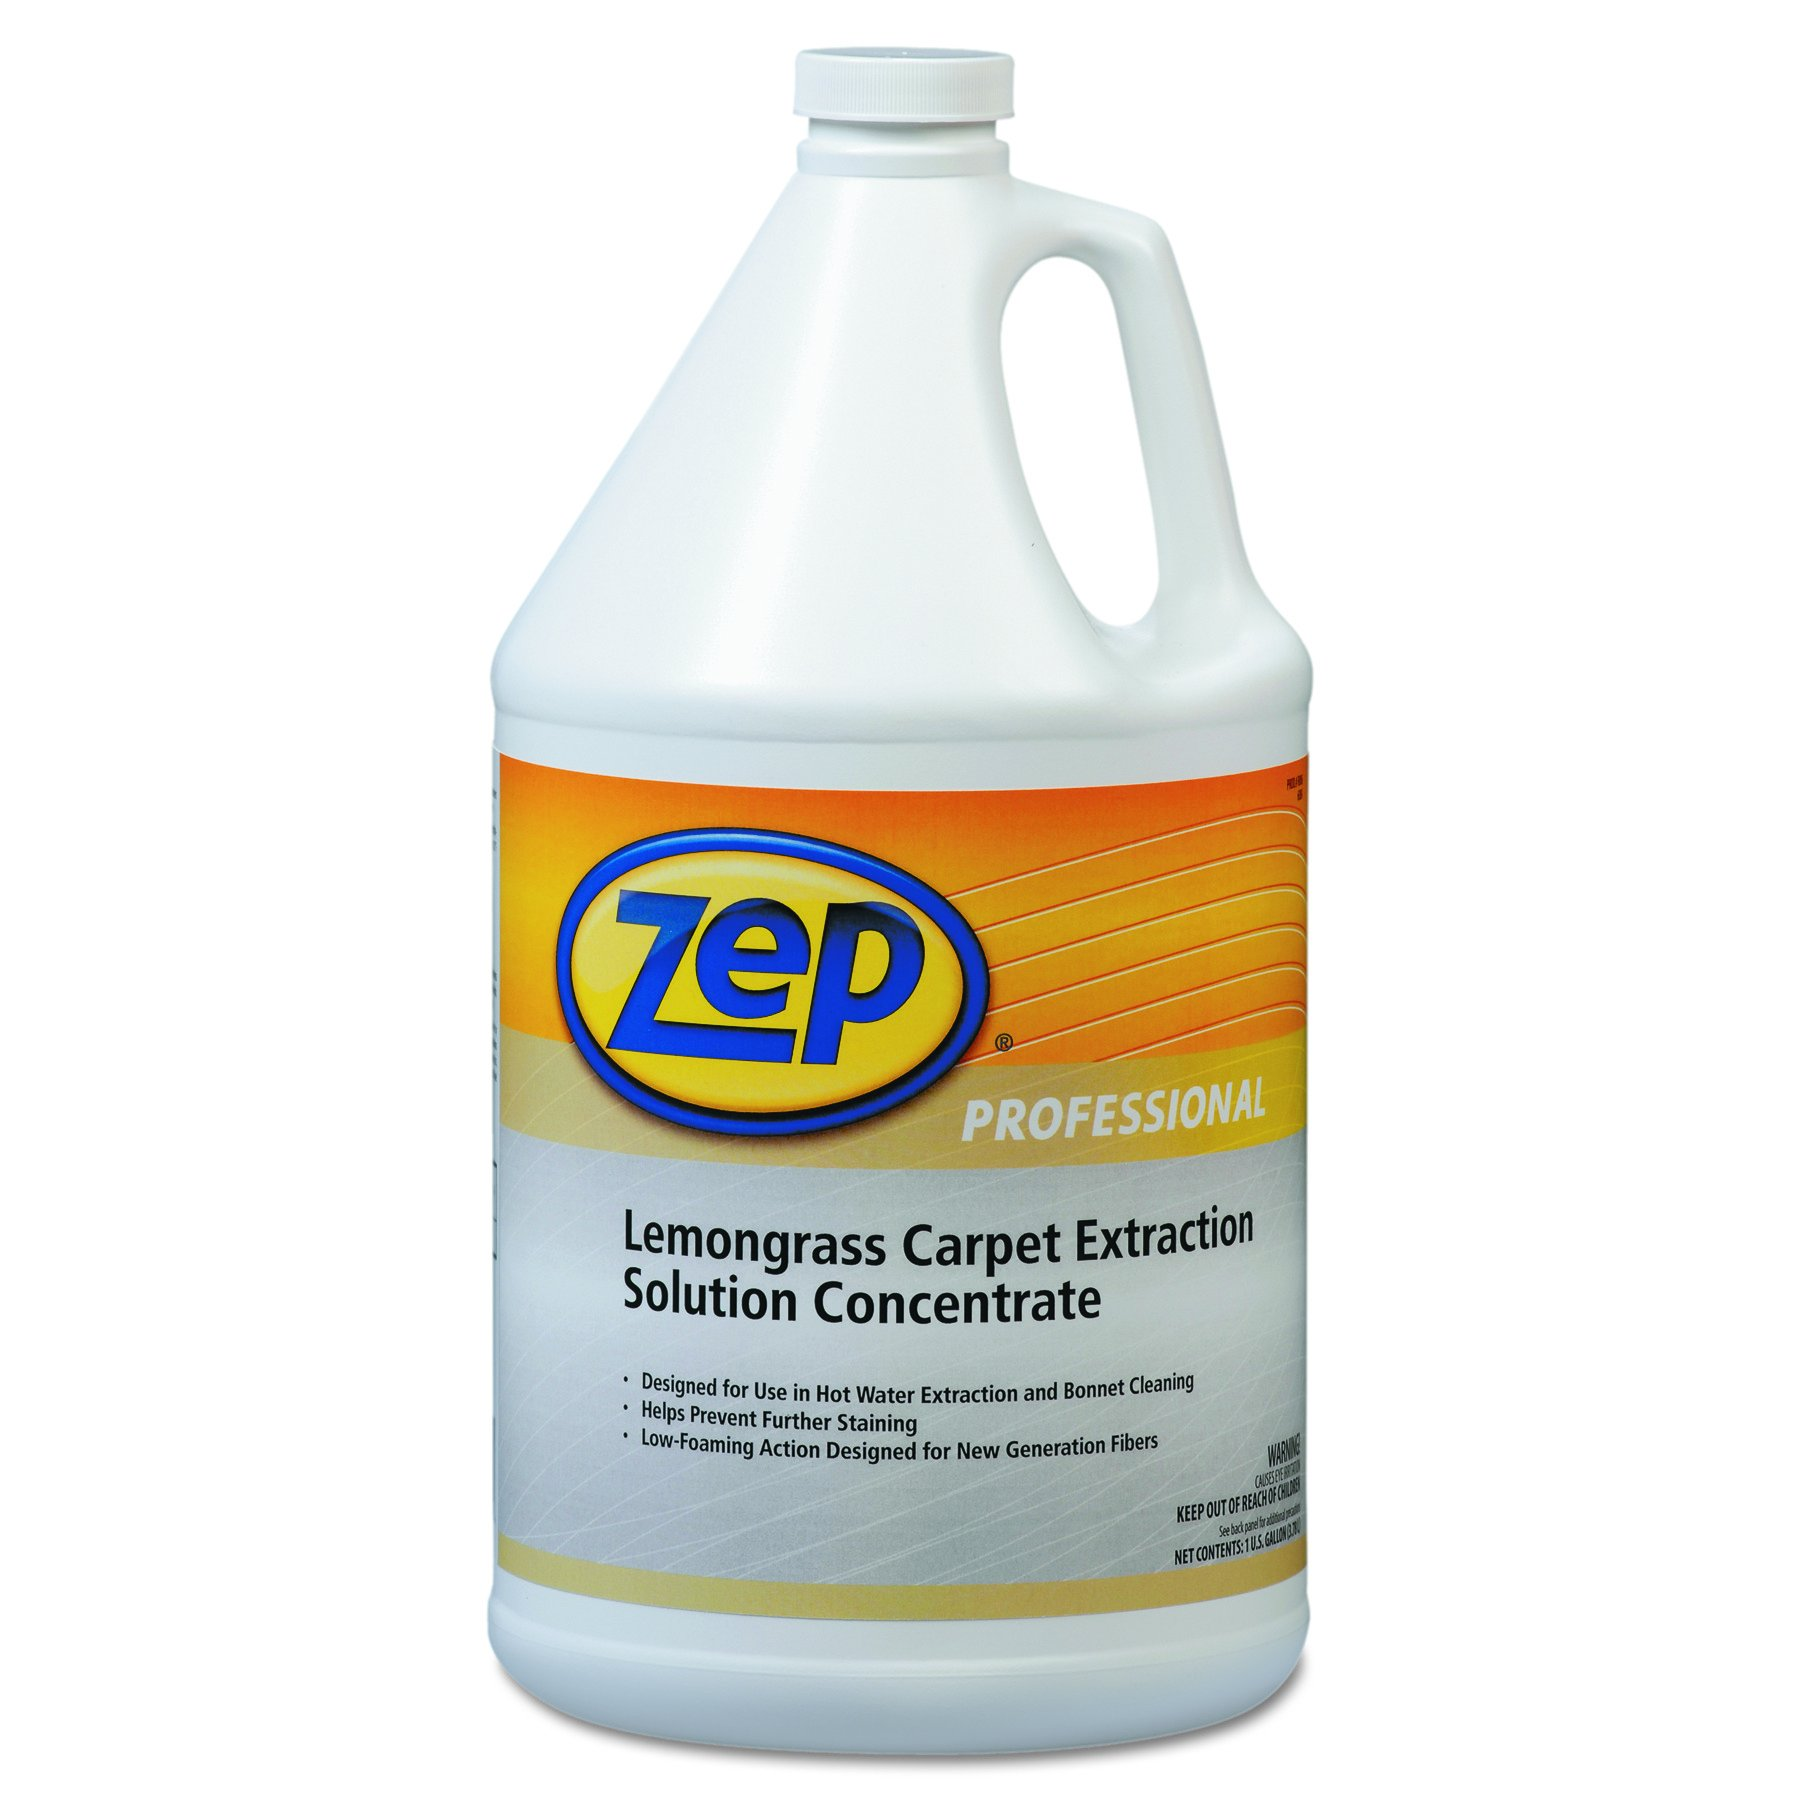 Zep Professional 1041398EA Carpet Extraction Cleaner, Lemongrass, 1 gal Bottle by Zep Professional